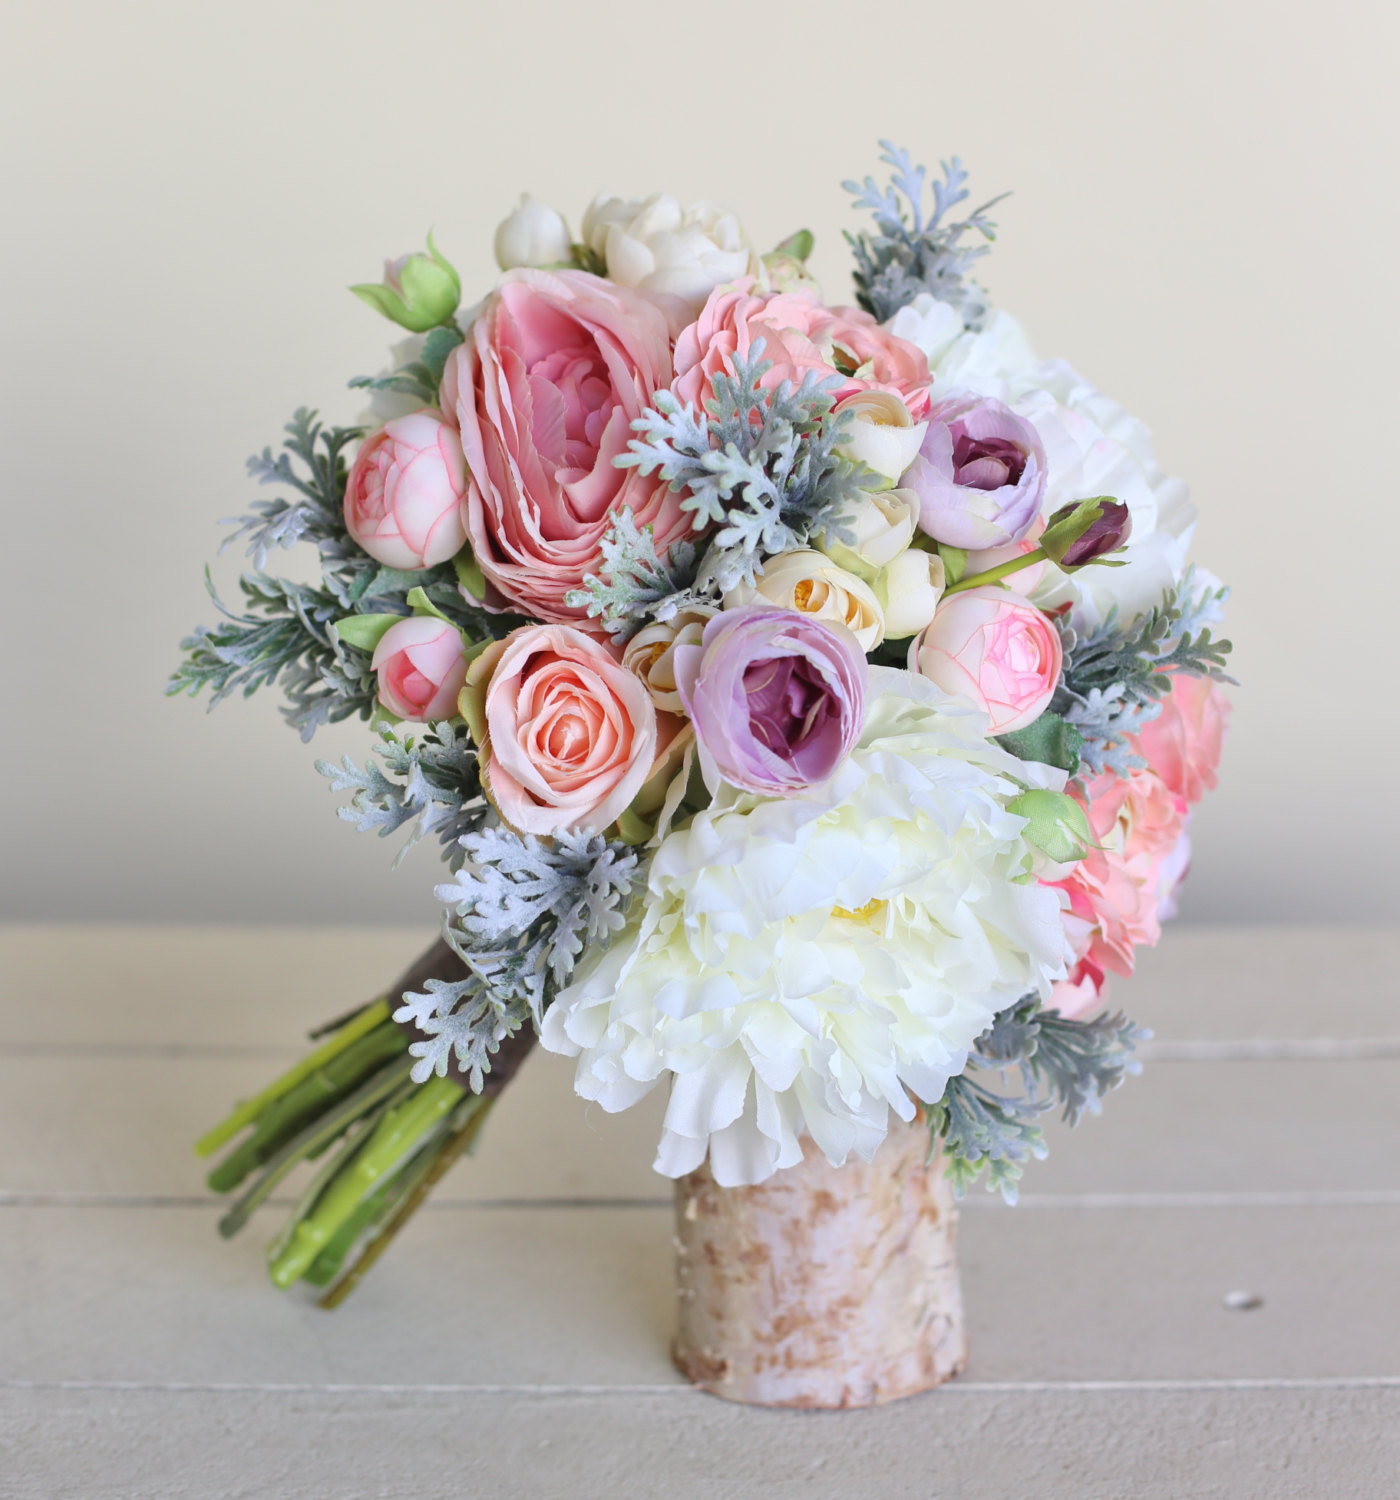 Wedding Flowers Bouquet Ideas: Wedding Bridal Bouquet Inspiration